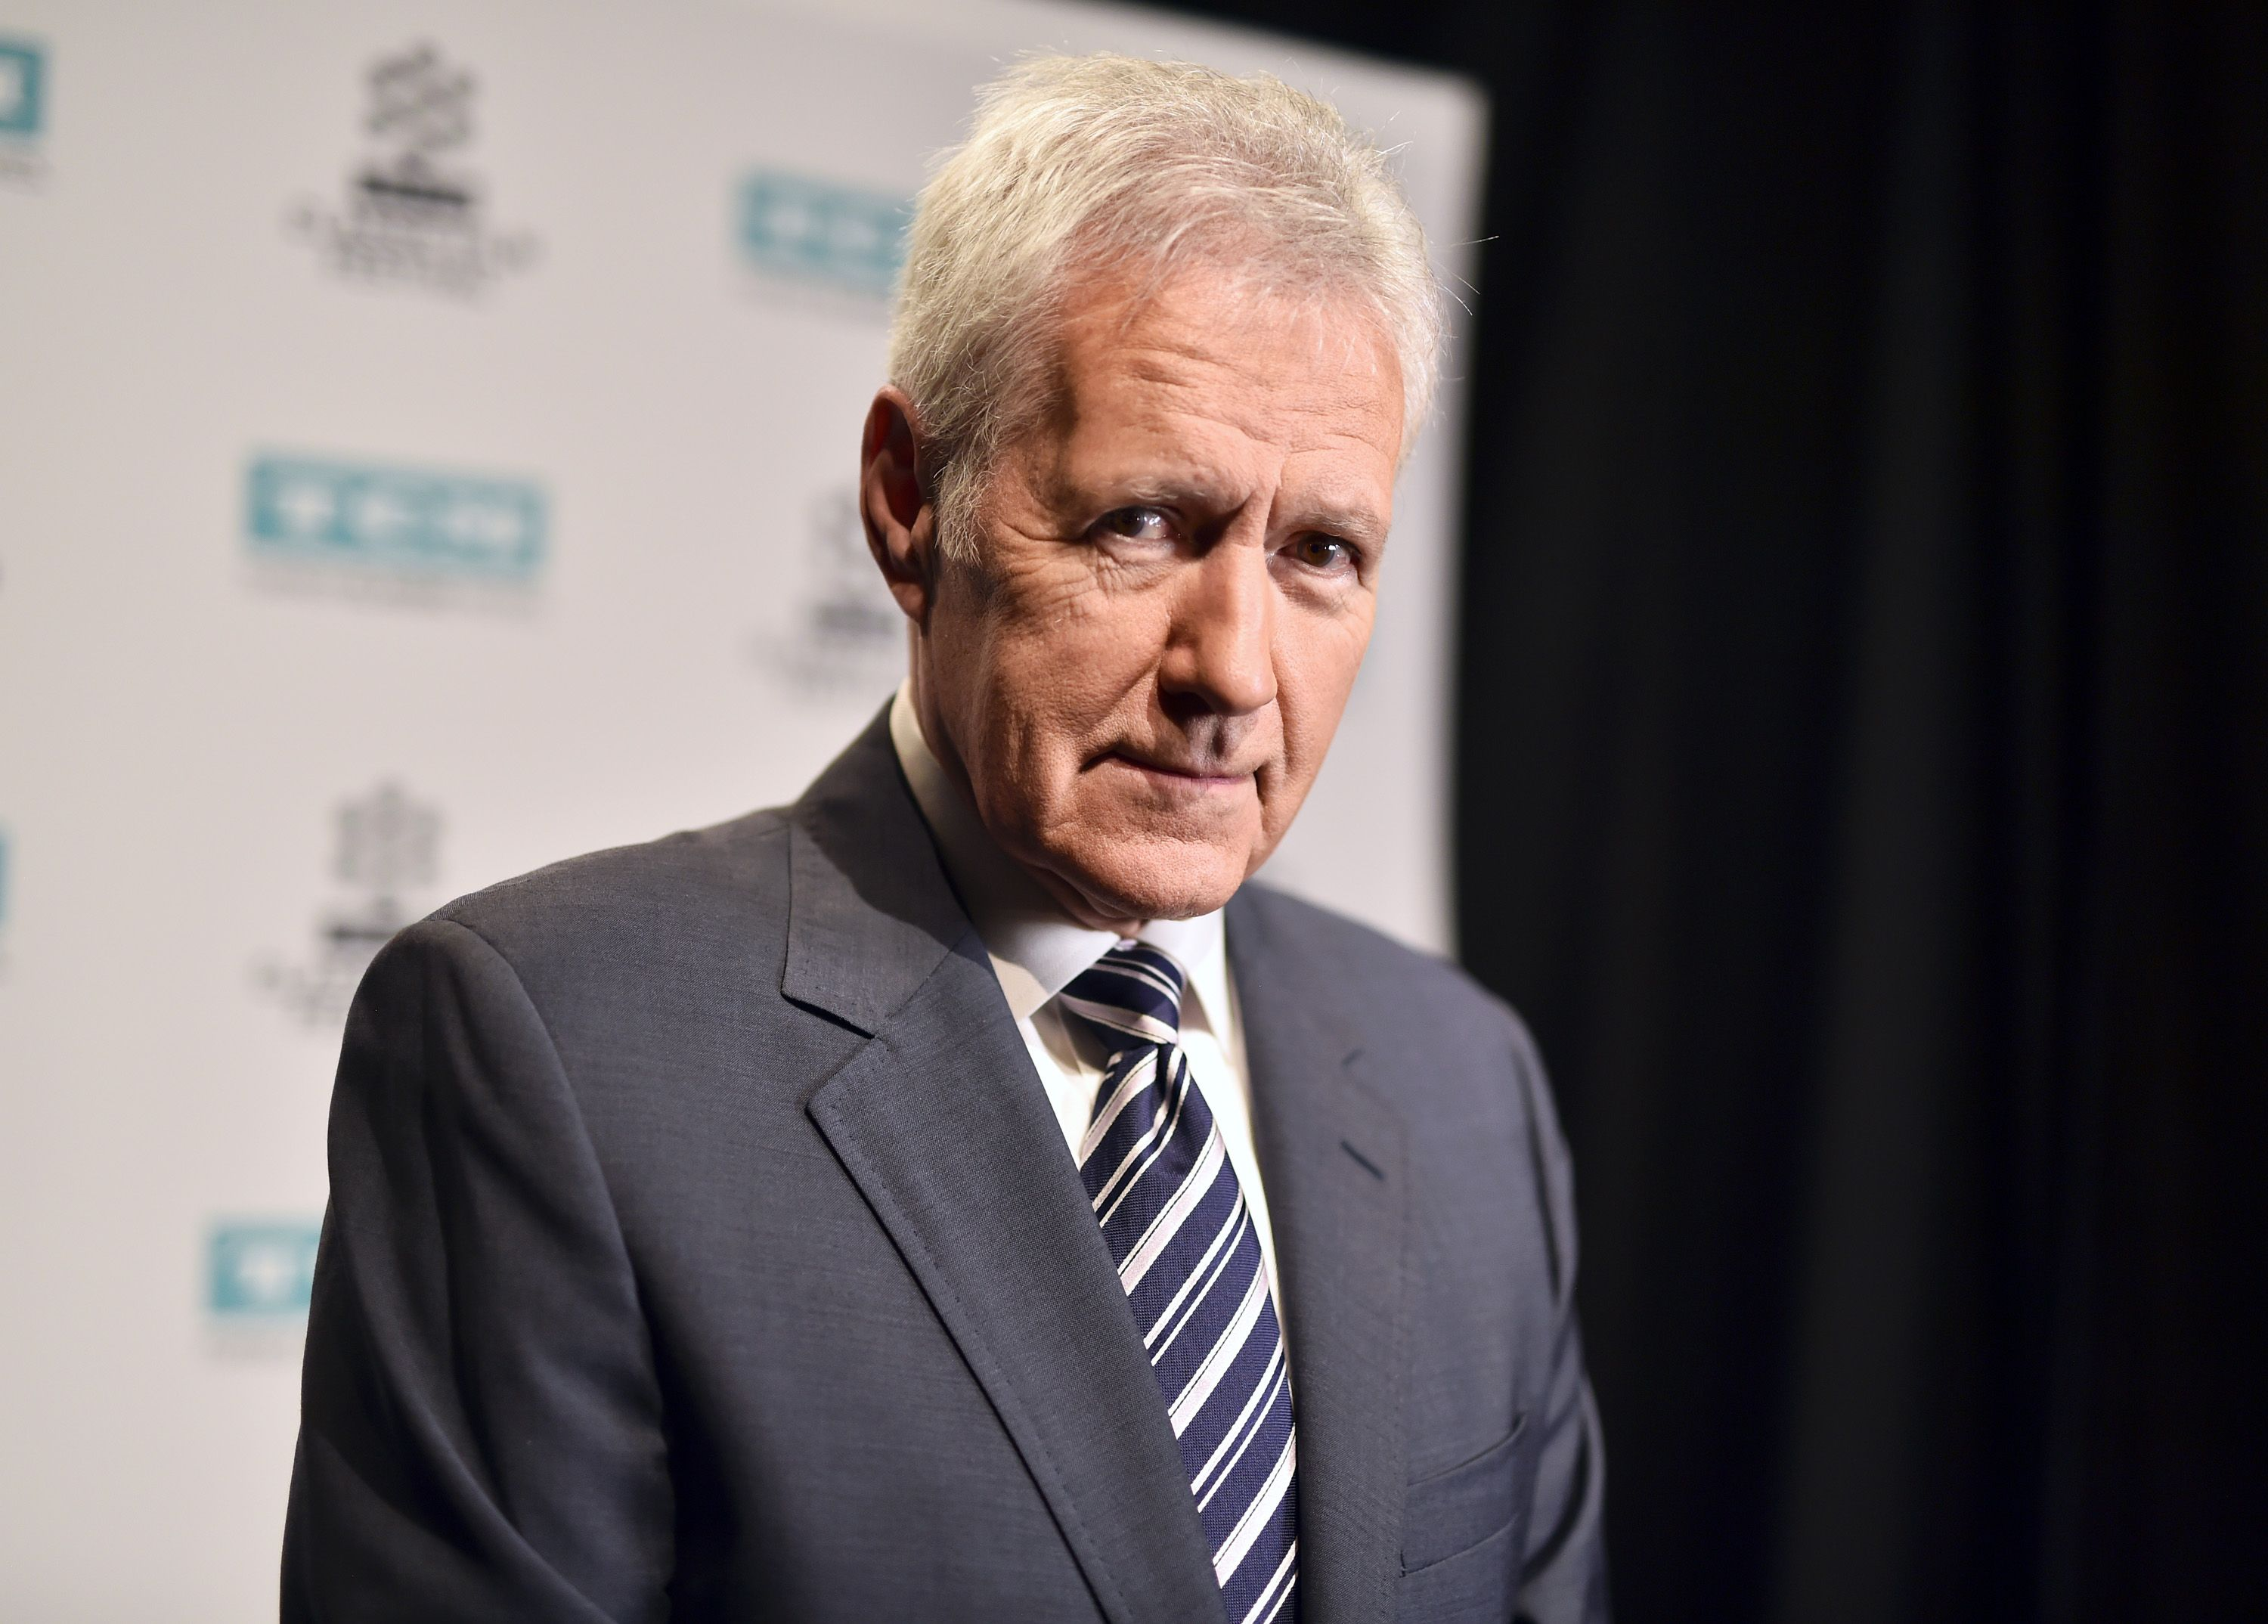 Alex Trebek at the screening of 'The Bridge on The River Kwai' on April 7, 2017 | Photo: Getty Images